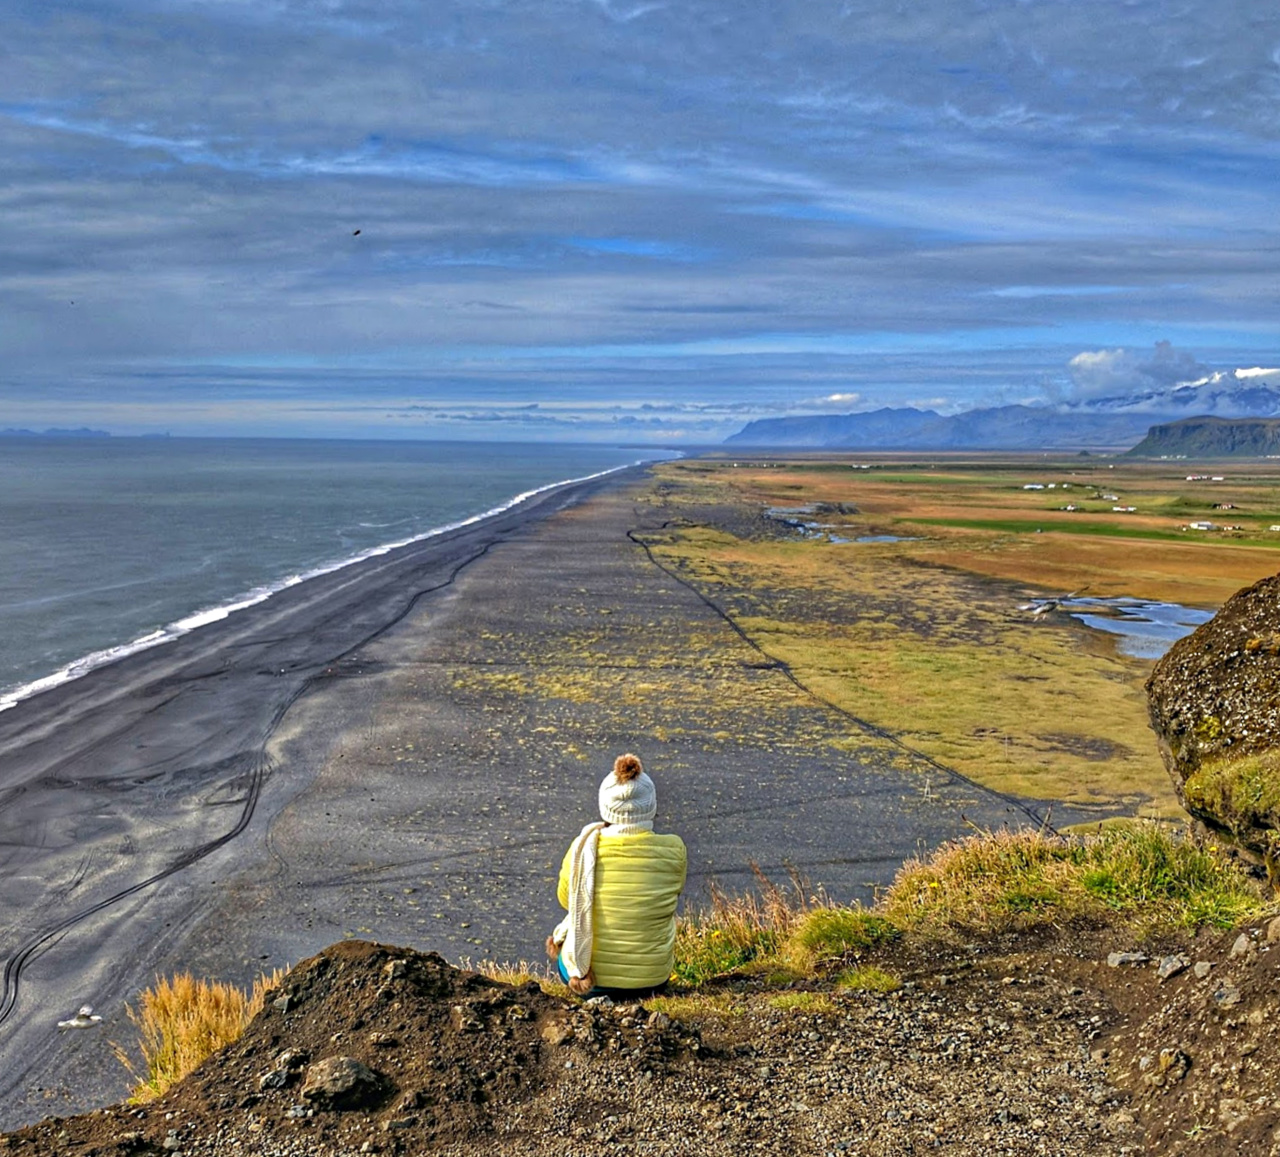 Planning Iceland Road trip. Enjoying vast views of the Black Sand Bbach.